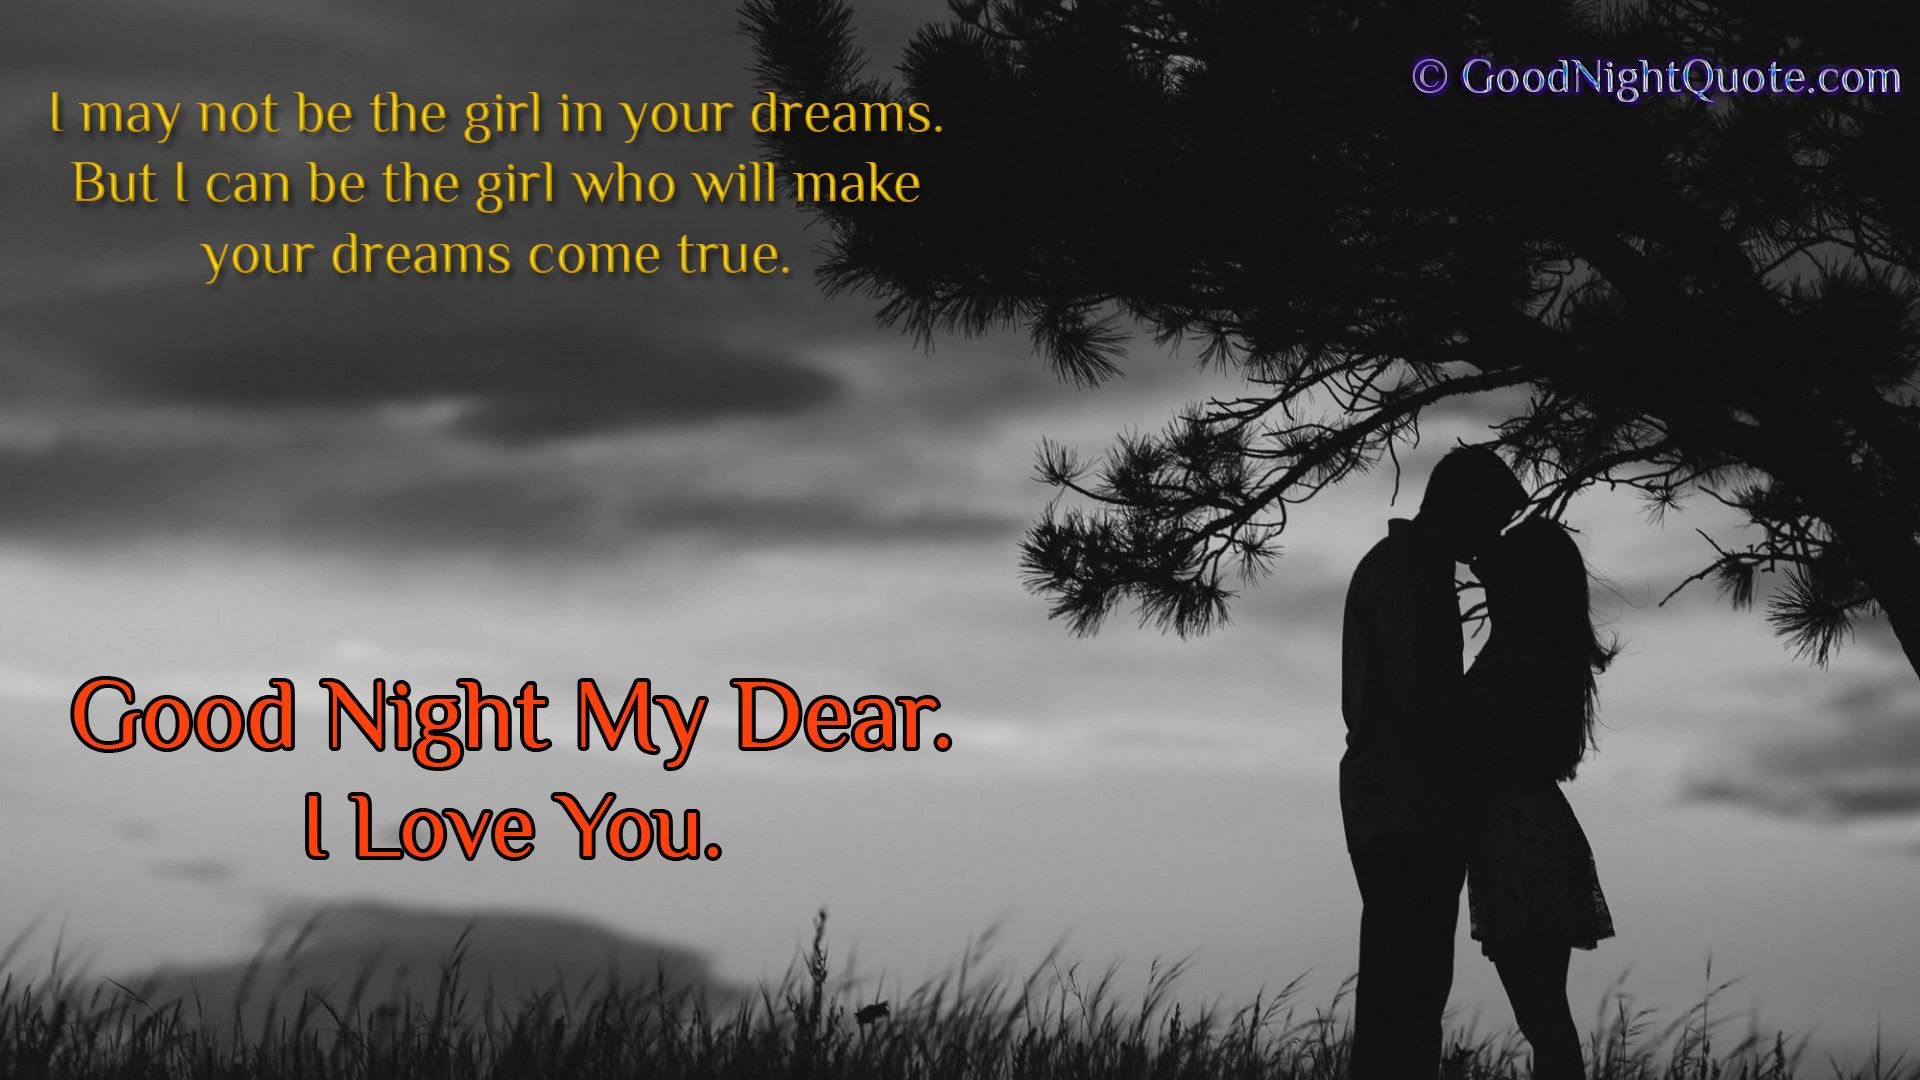 Cute Good Night Love Quote For Boy Friend Good Night Quotes Images Romantic Images Colorado Engagement Photography